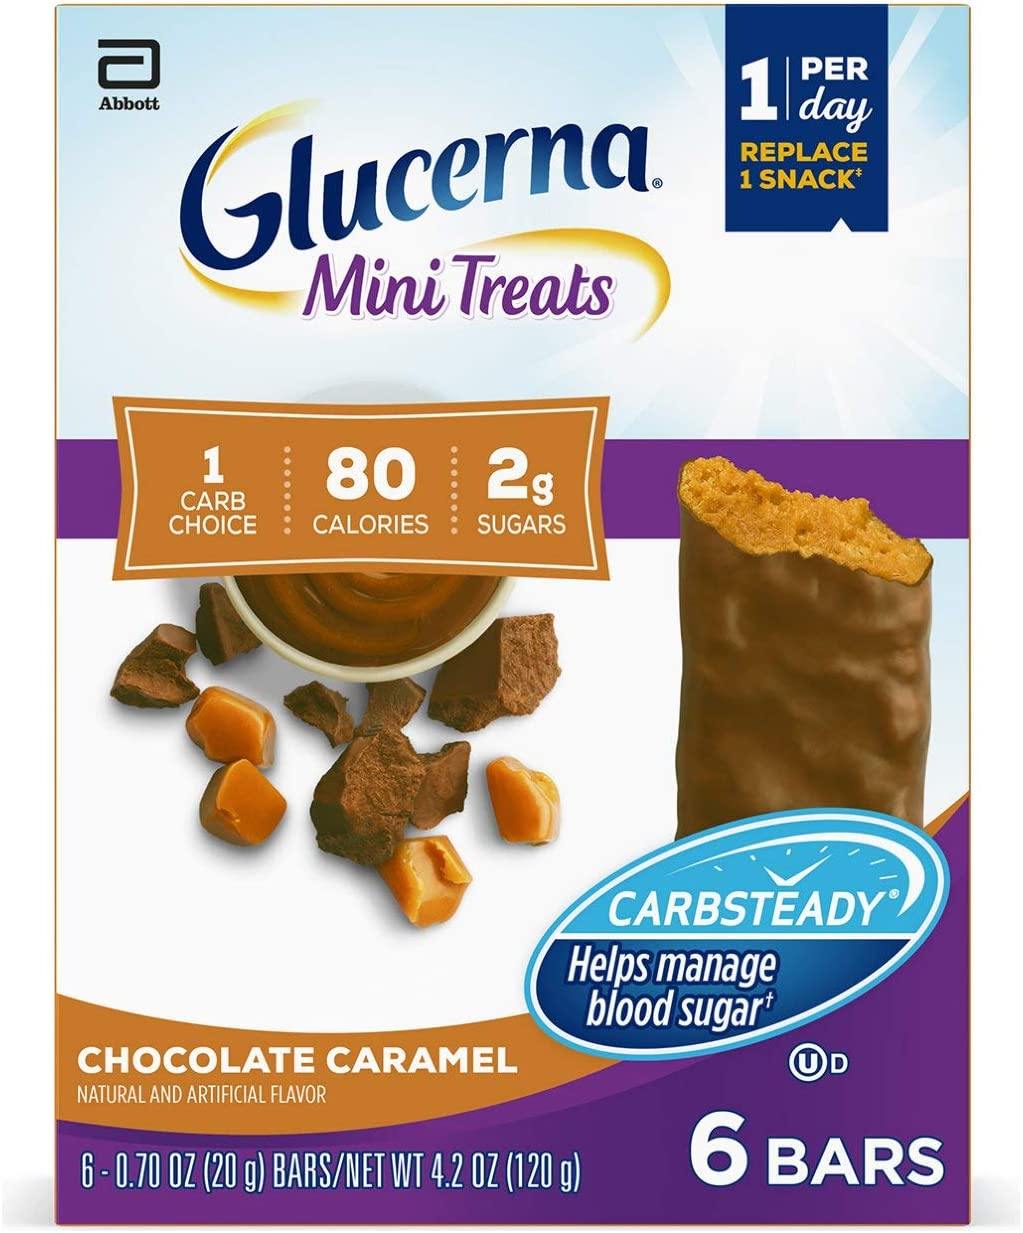 Amazon Com Glucerna Mini Treats 24 Count For People With Diabetes To Help Manage Blood Sugar With Carbsteady And Essential Vitamins Minerals 80 Calories Chocolate Caramel 0 70 Oz Health Personal Care